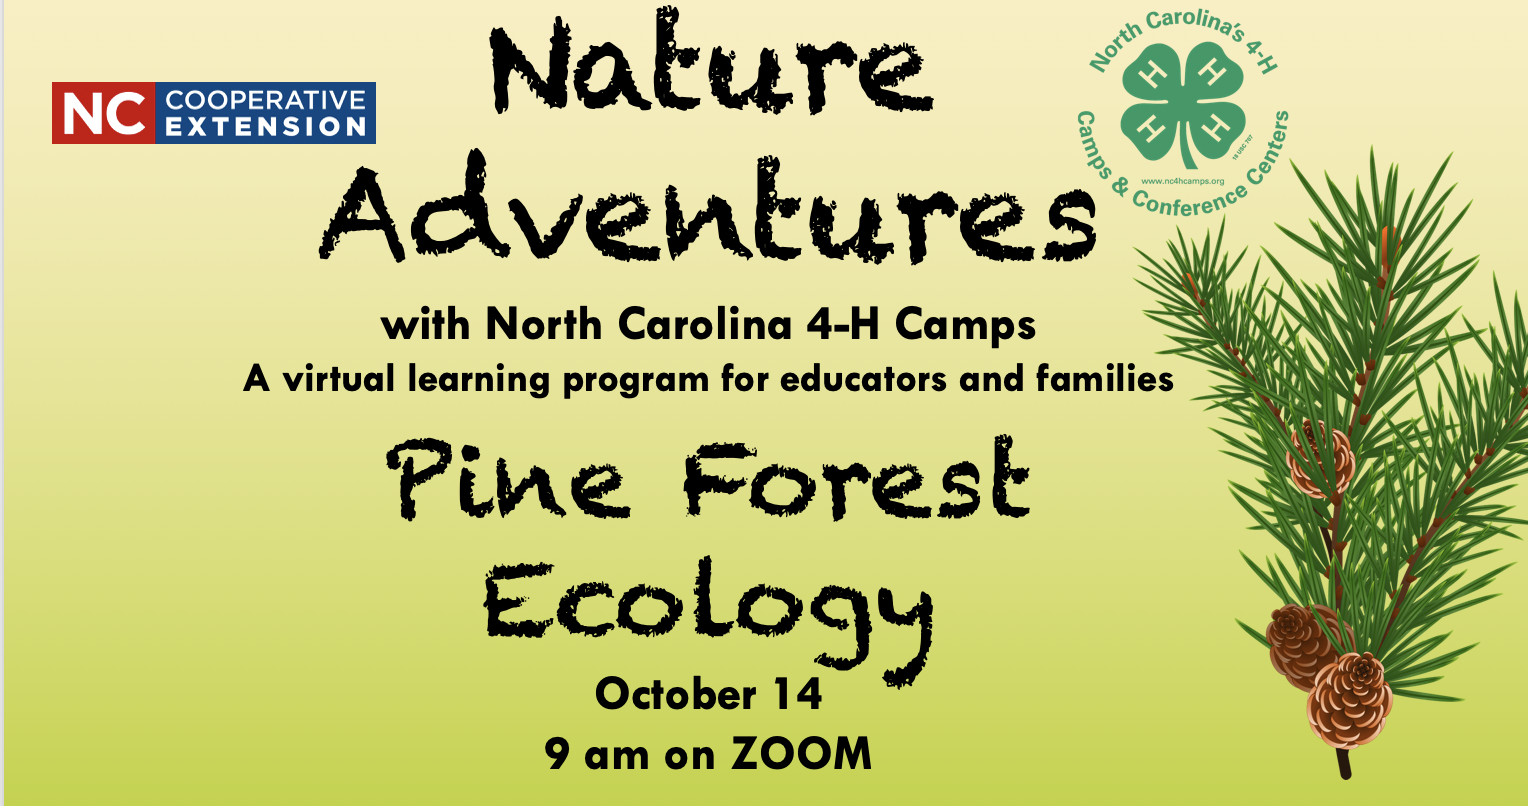 Pine Forest Ecology